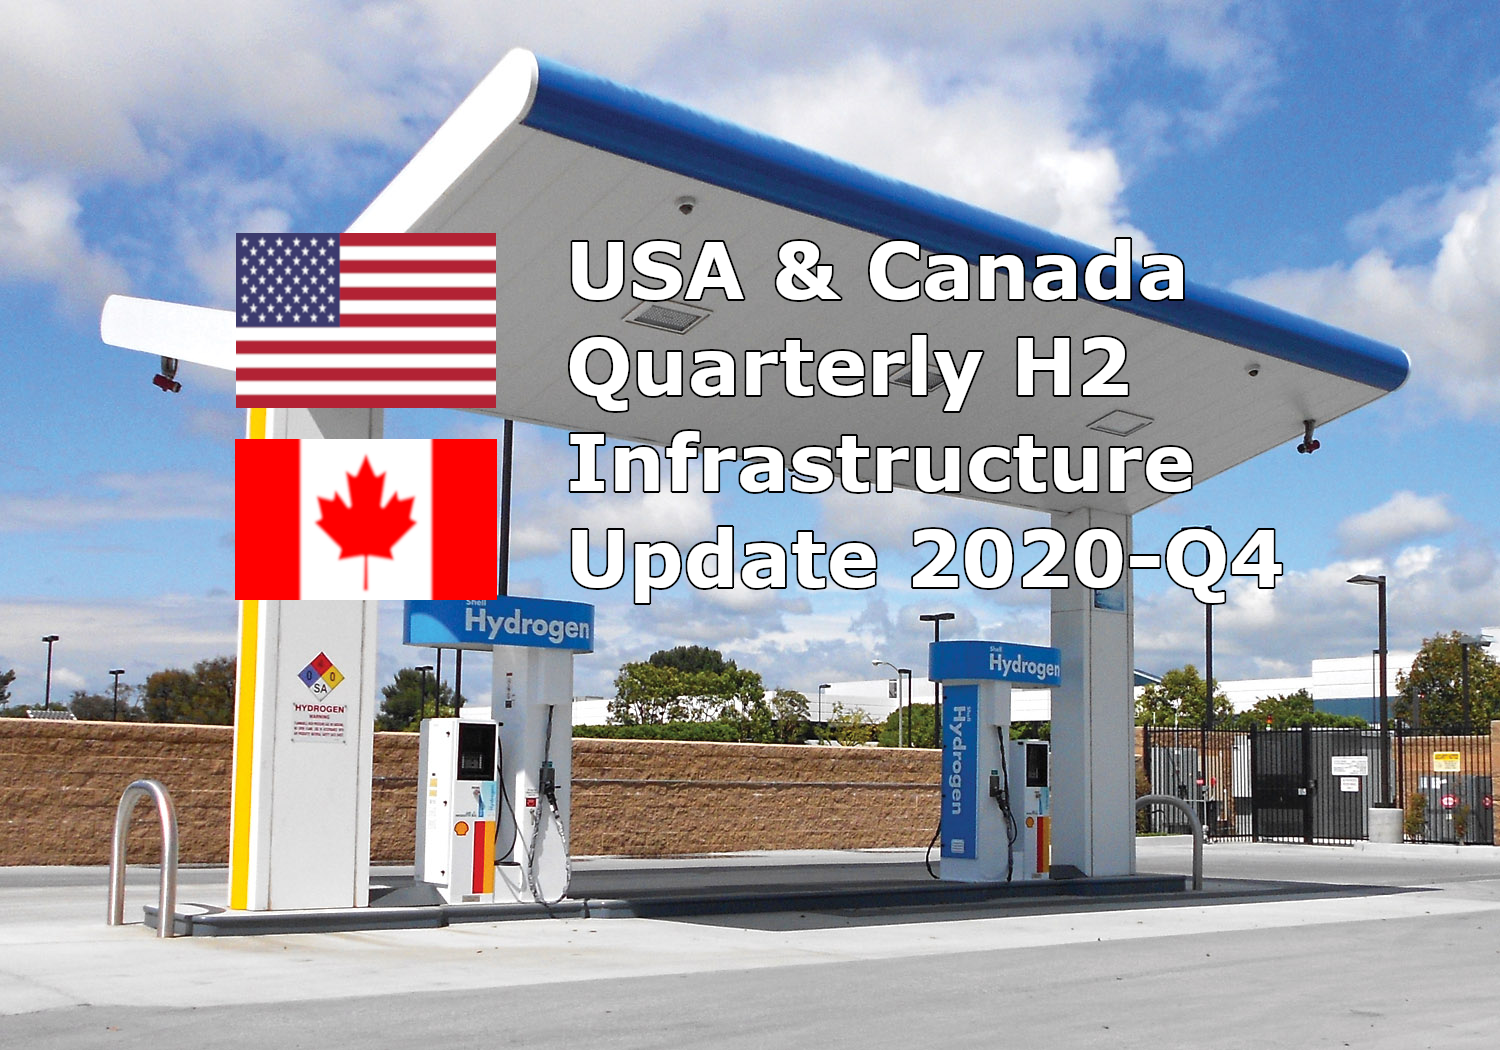 USA & CANADA QUARTERLY H2 INFRASTRUCTURE UPDATE 2020-Q4